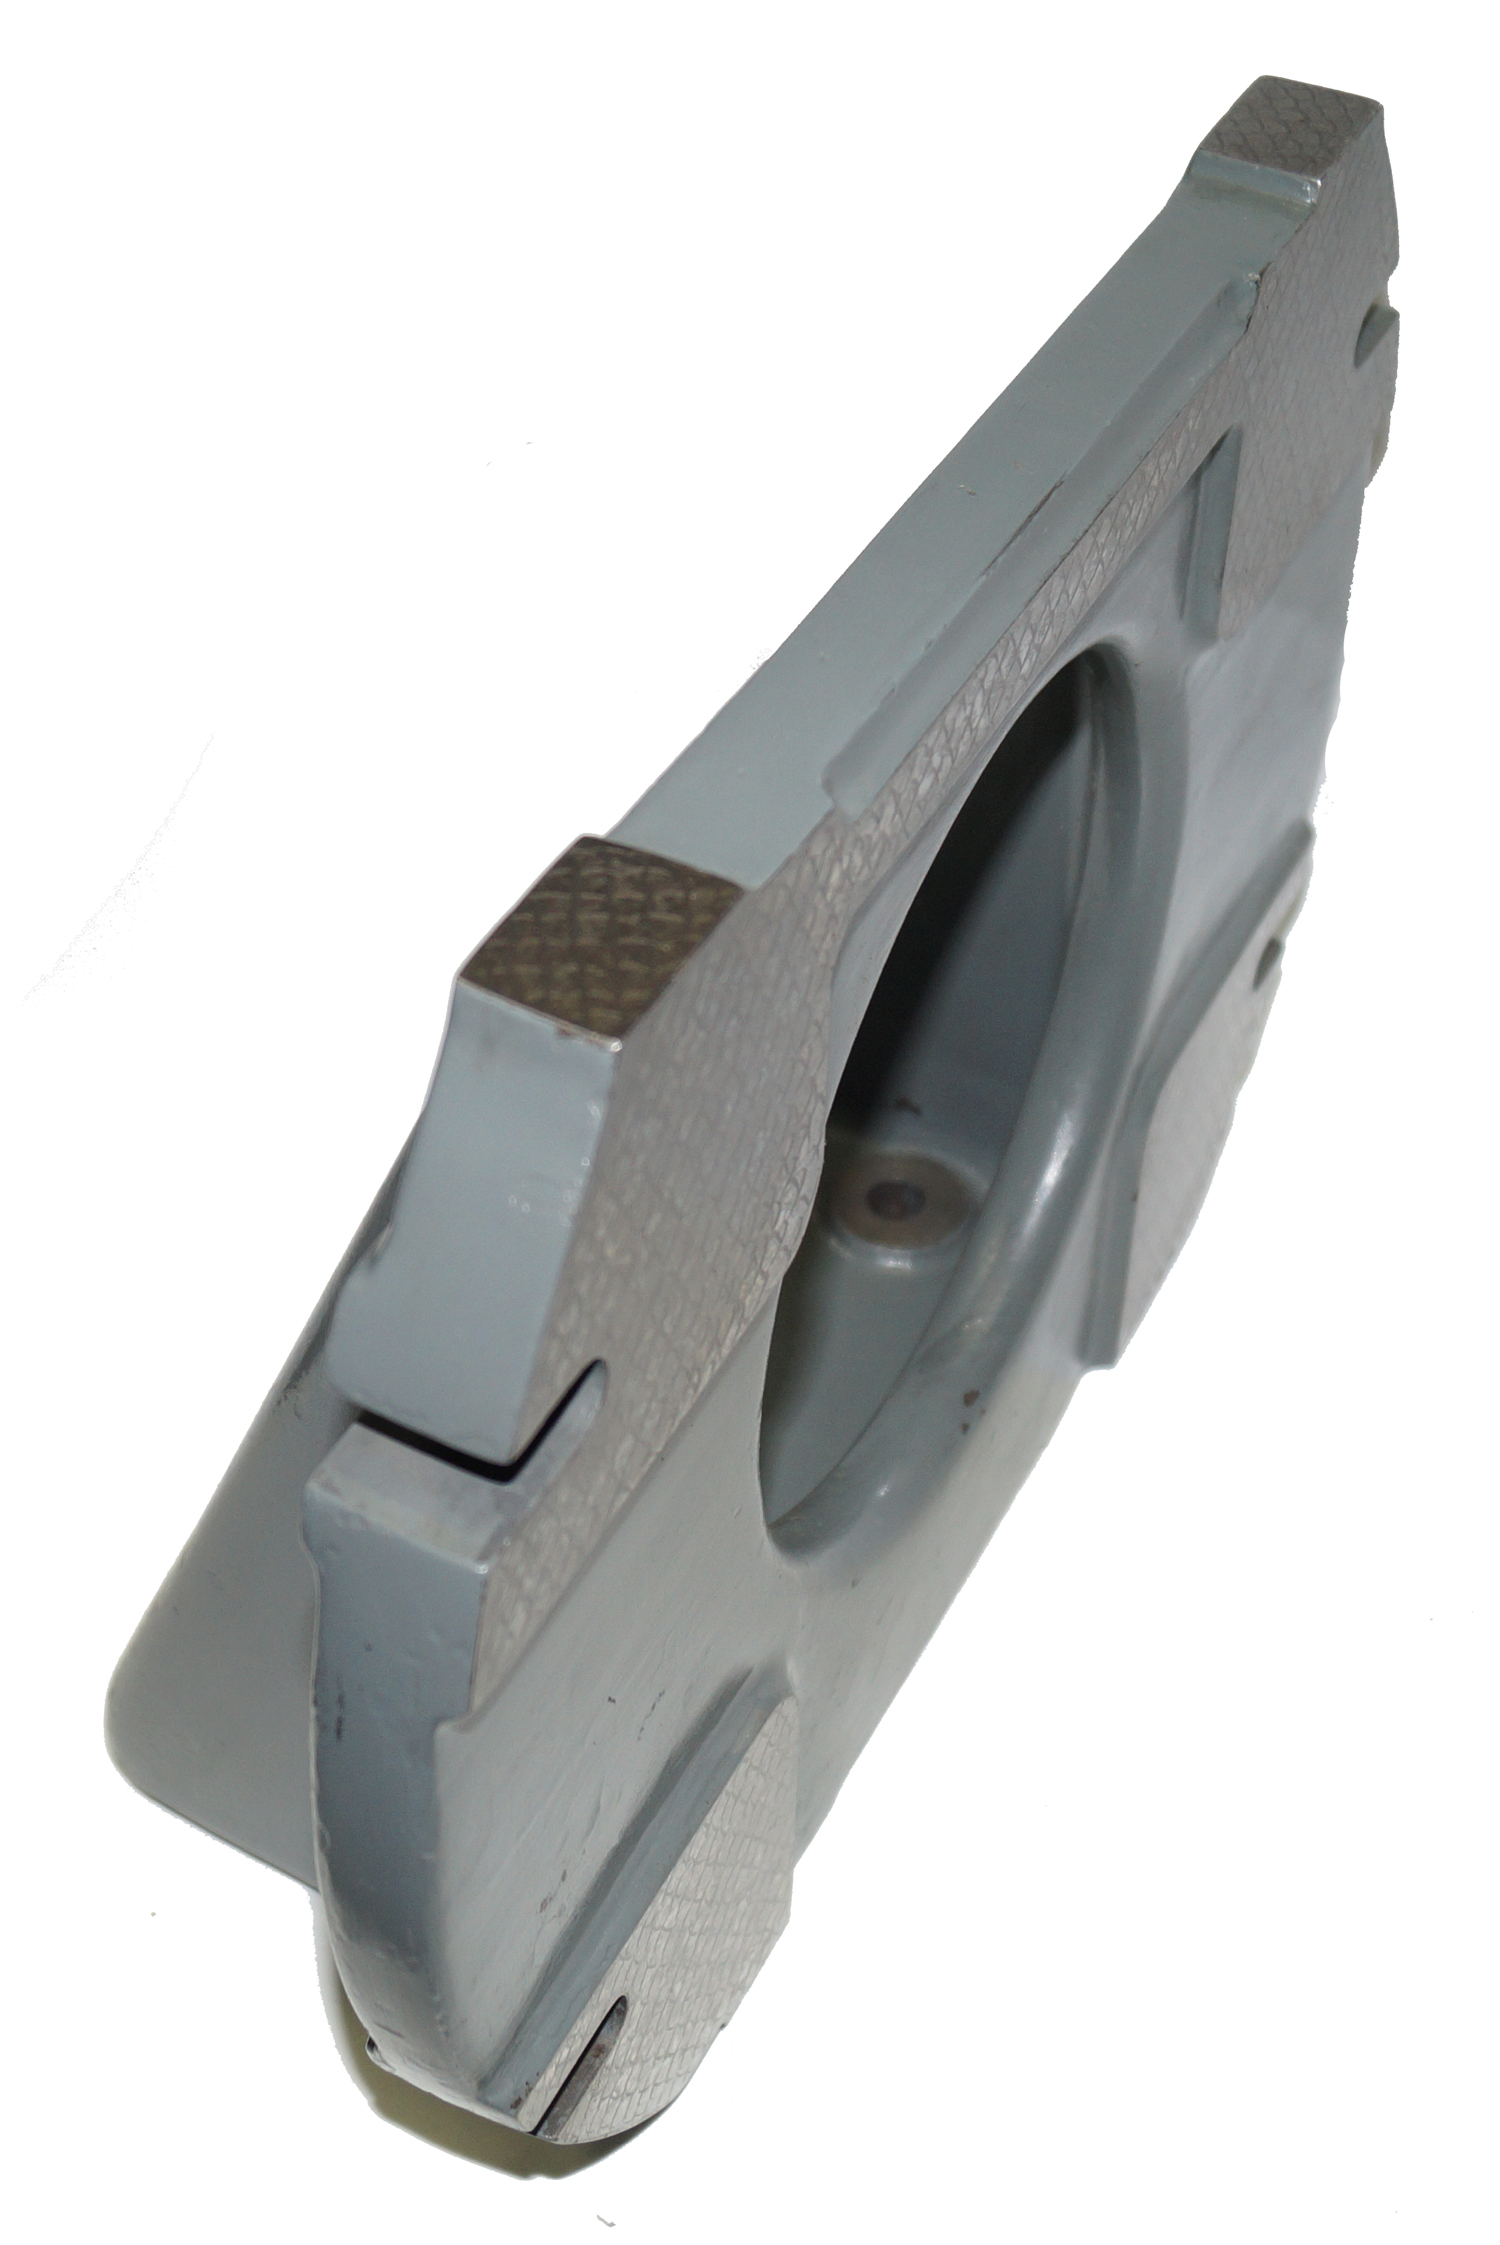 Moore Jig Borer Grinder Rotary Table Angle Plate